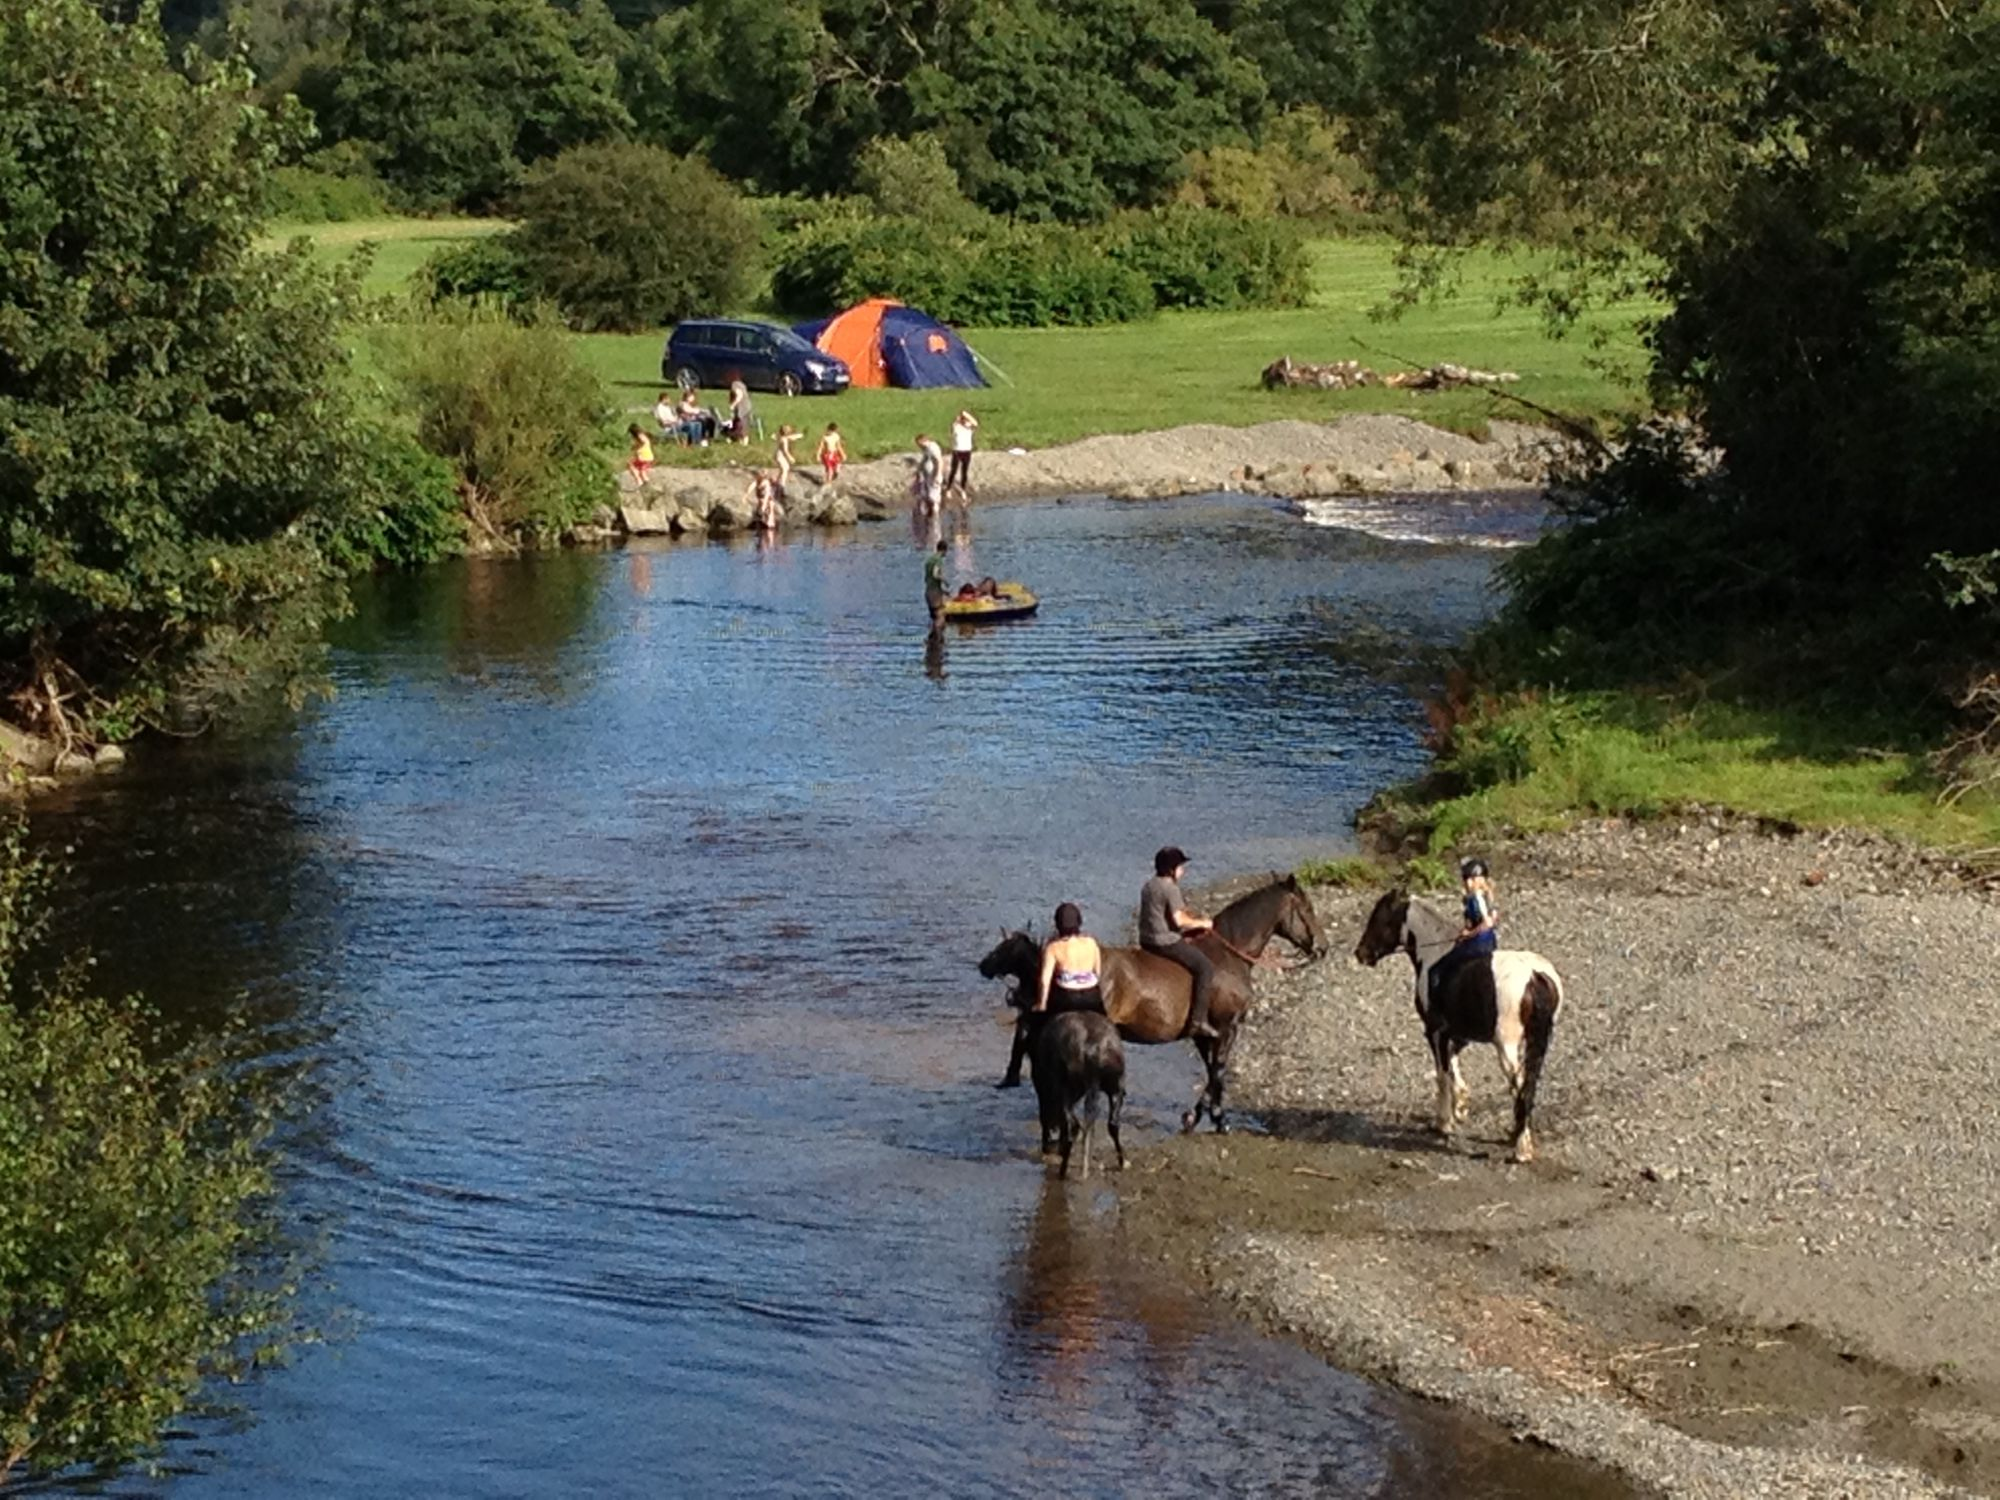 Refreshingly understated, family-friendly campsite on a working mid-Wales farm. Oh yeah, and you can camp right next to the River Severn!